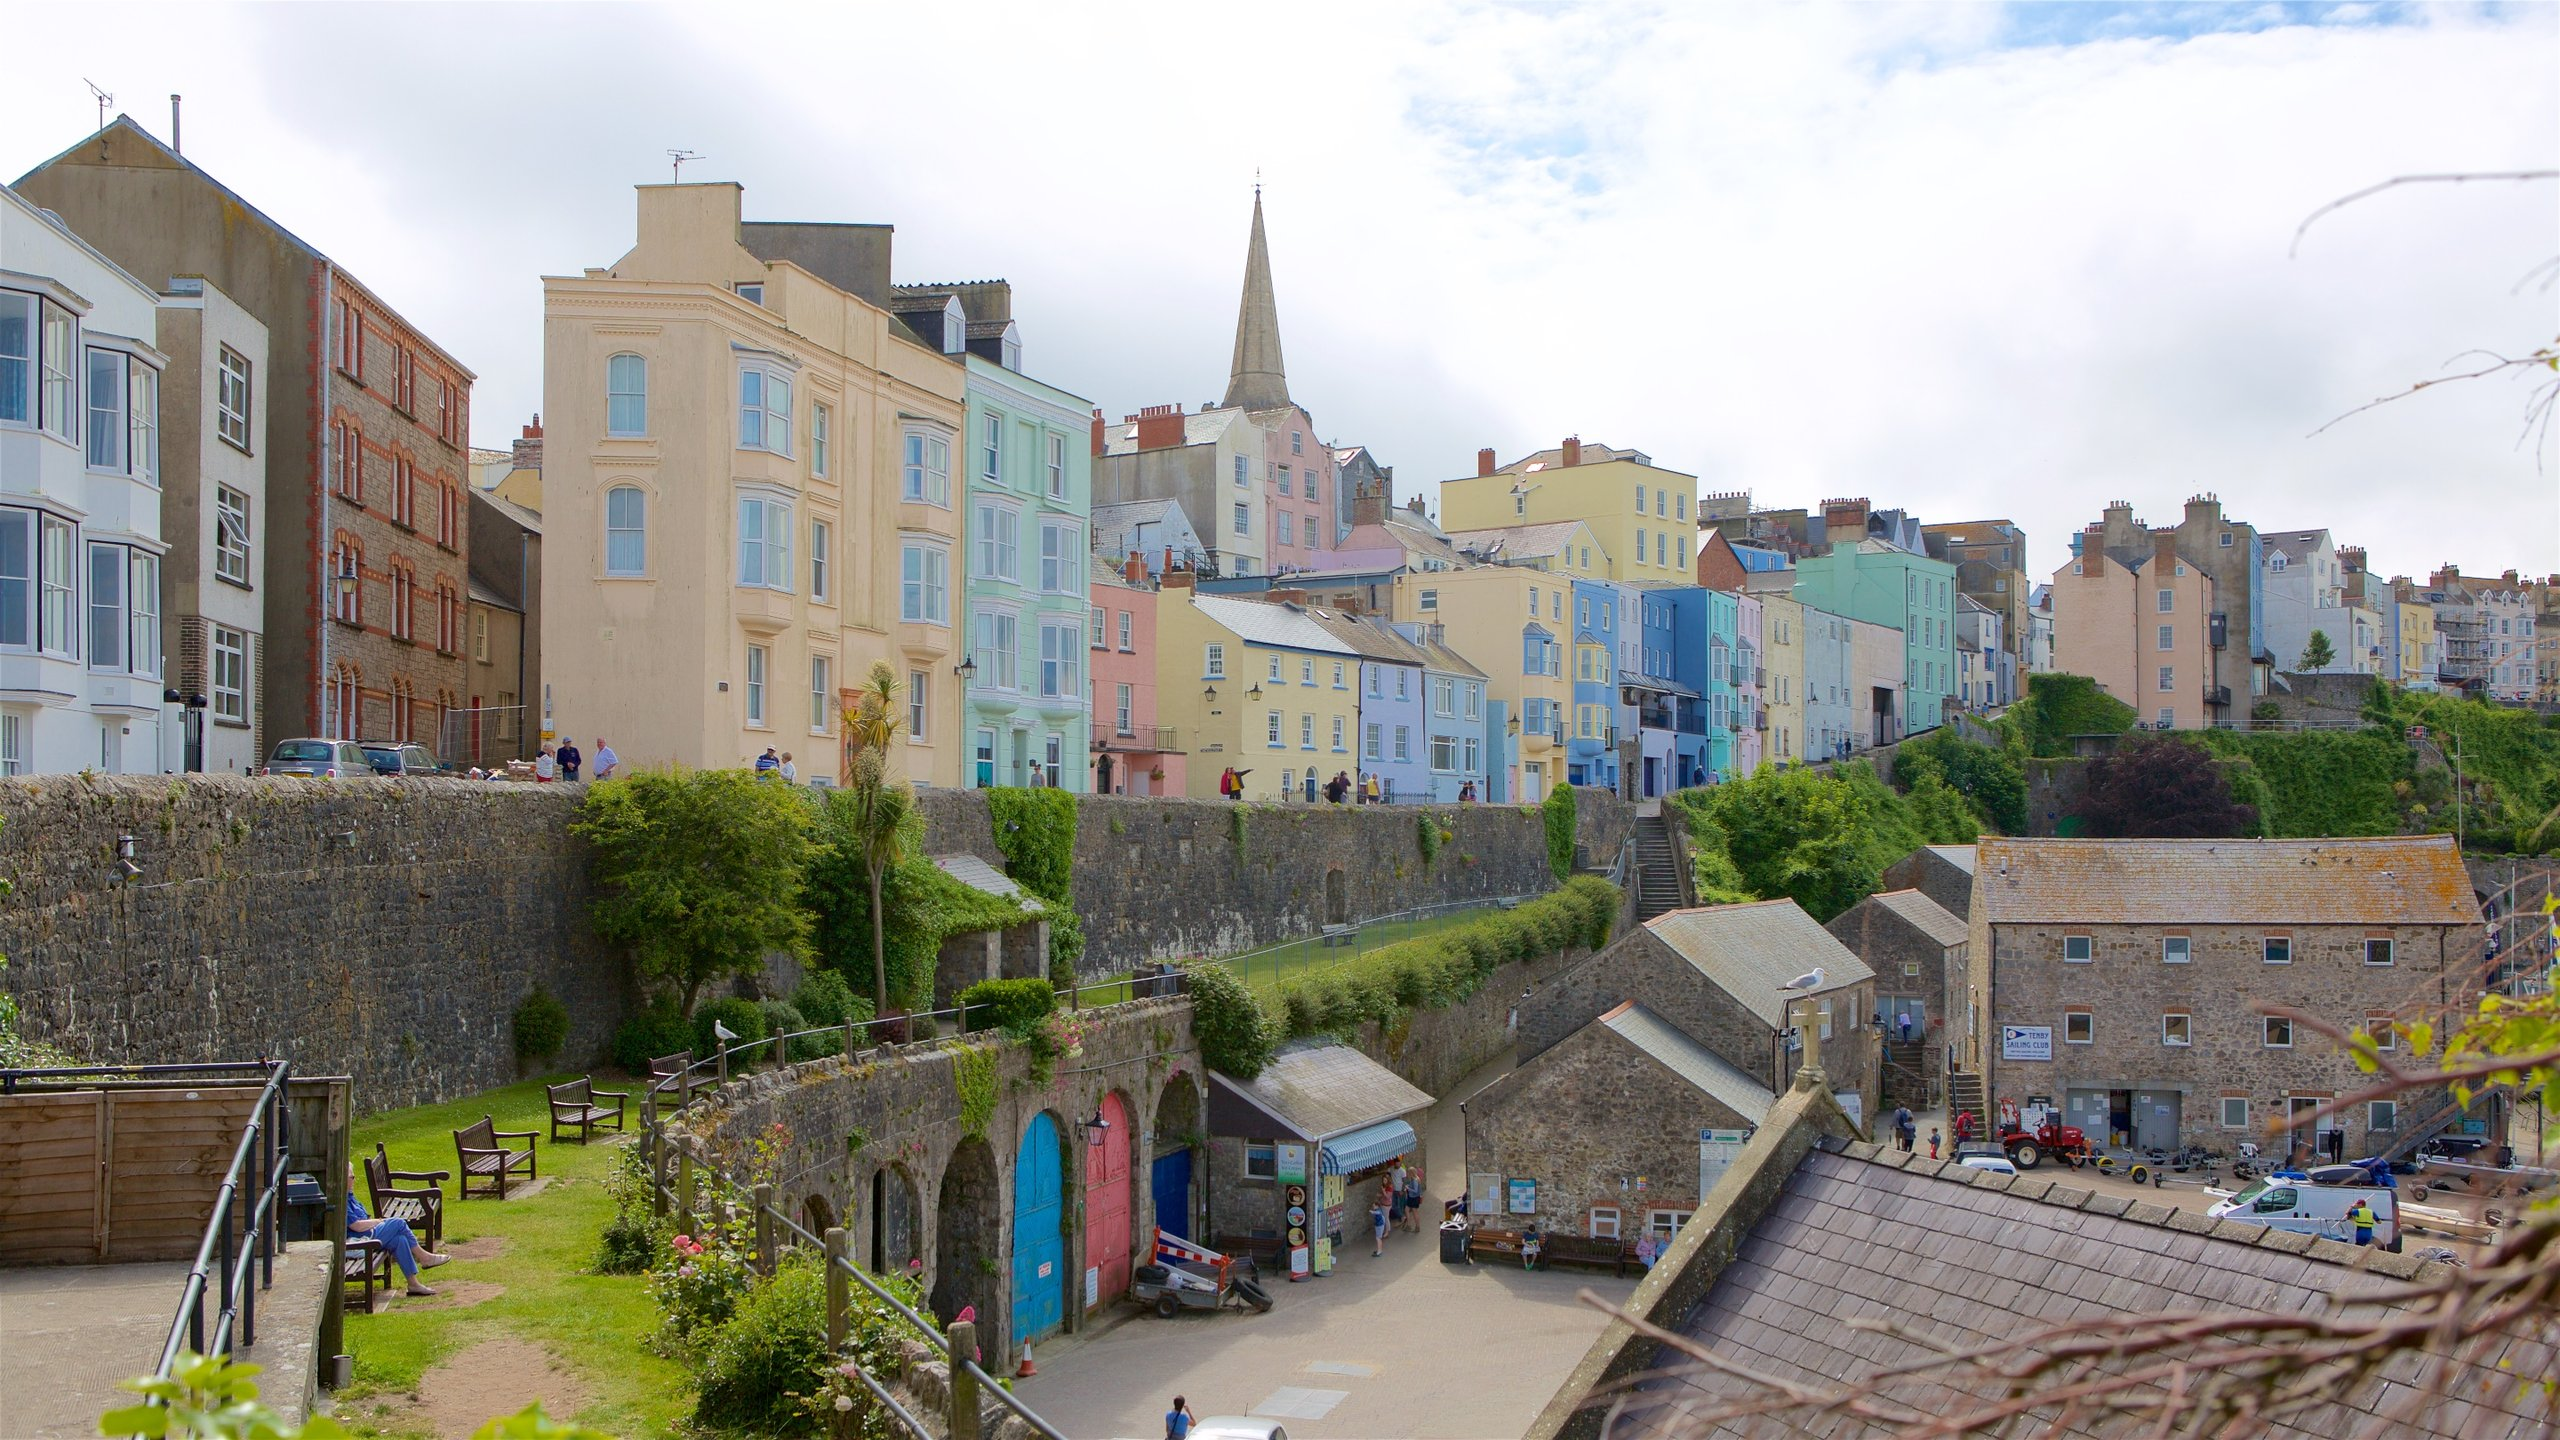 Tenby walled town